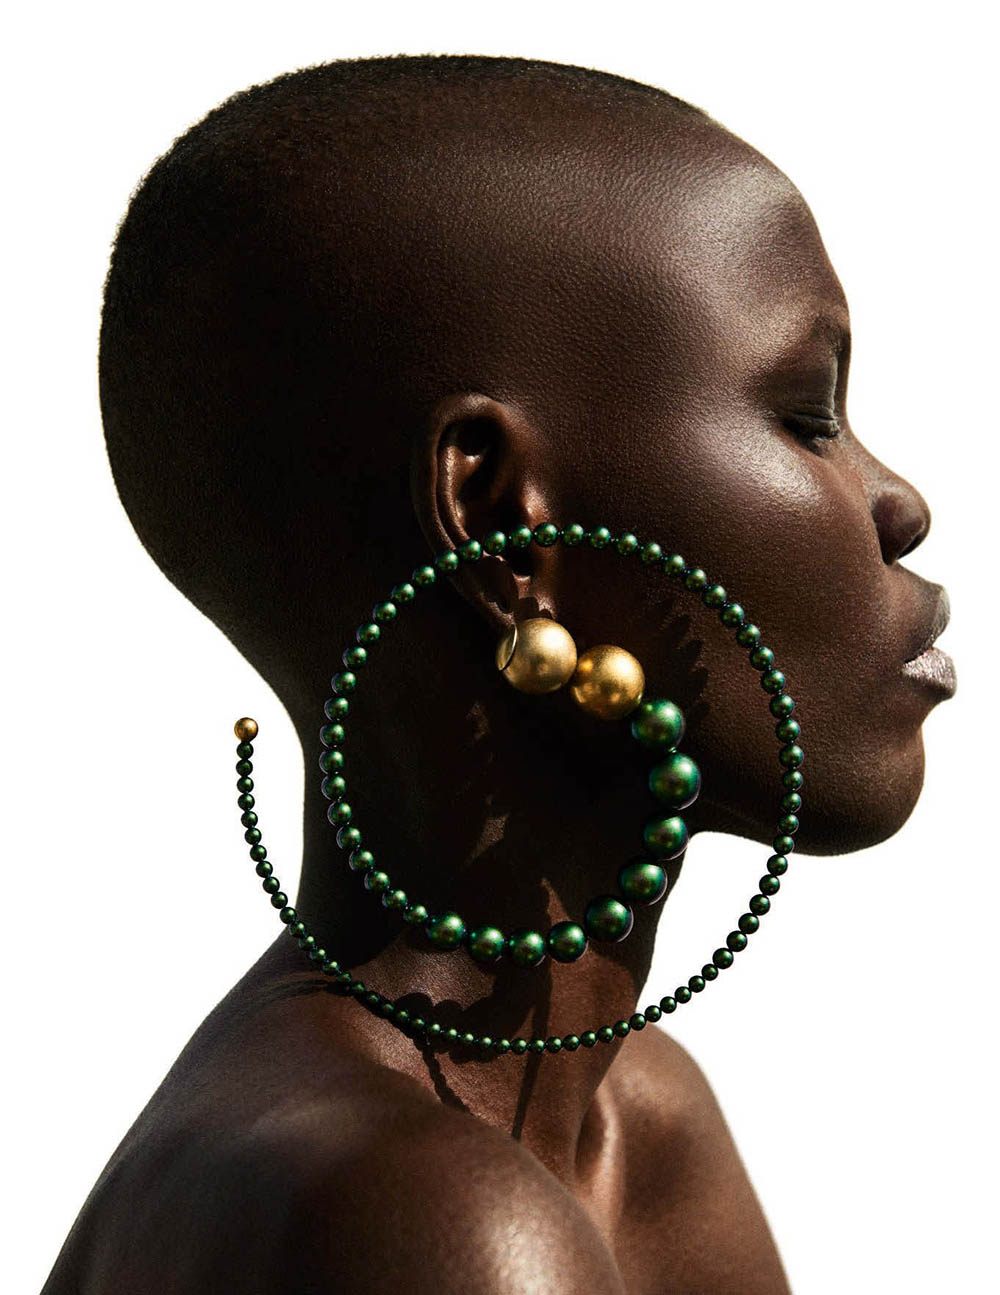 Grace Bol by Giampaolo Sgura for Vogue Germany May 2018